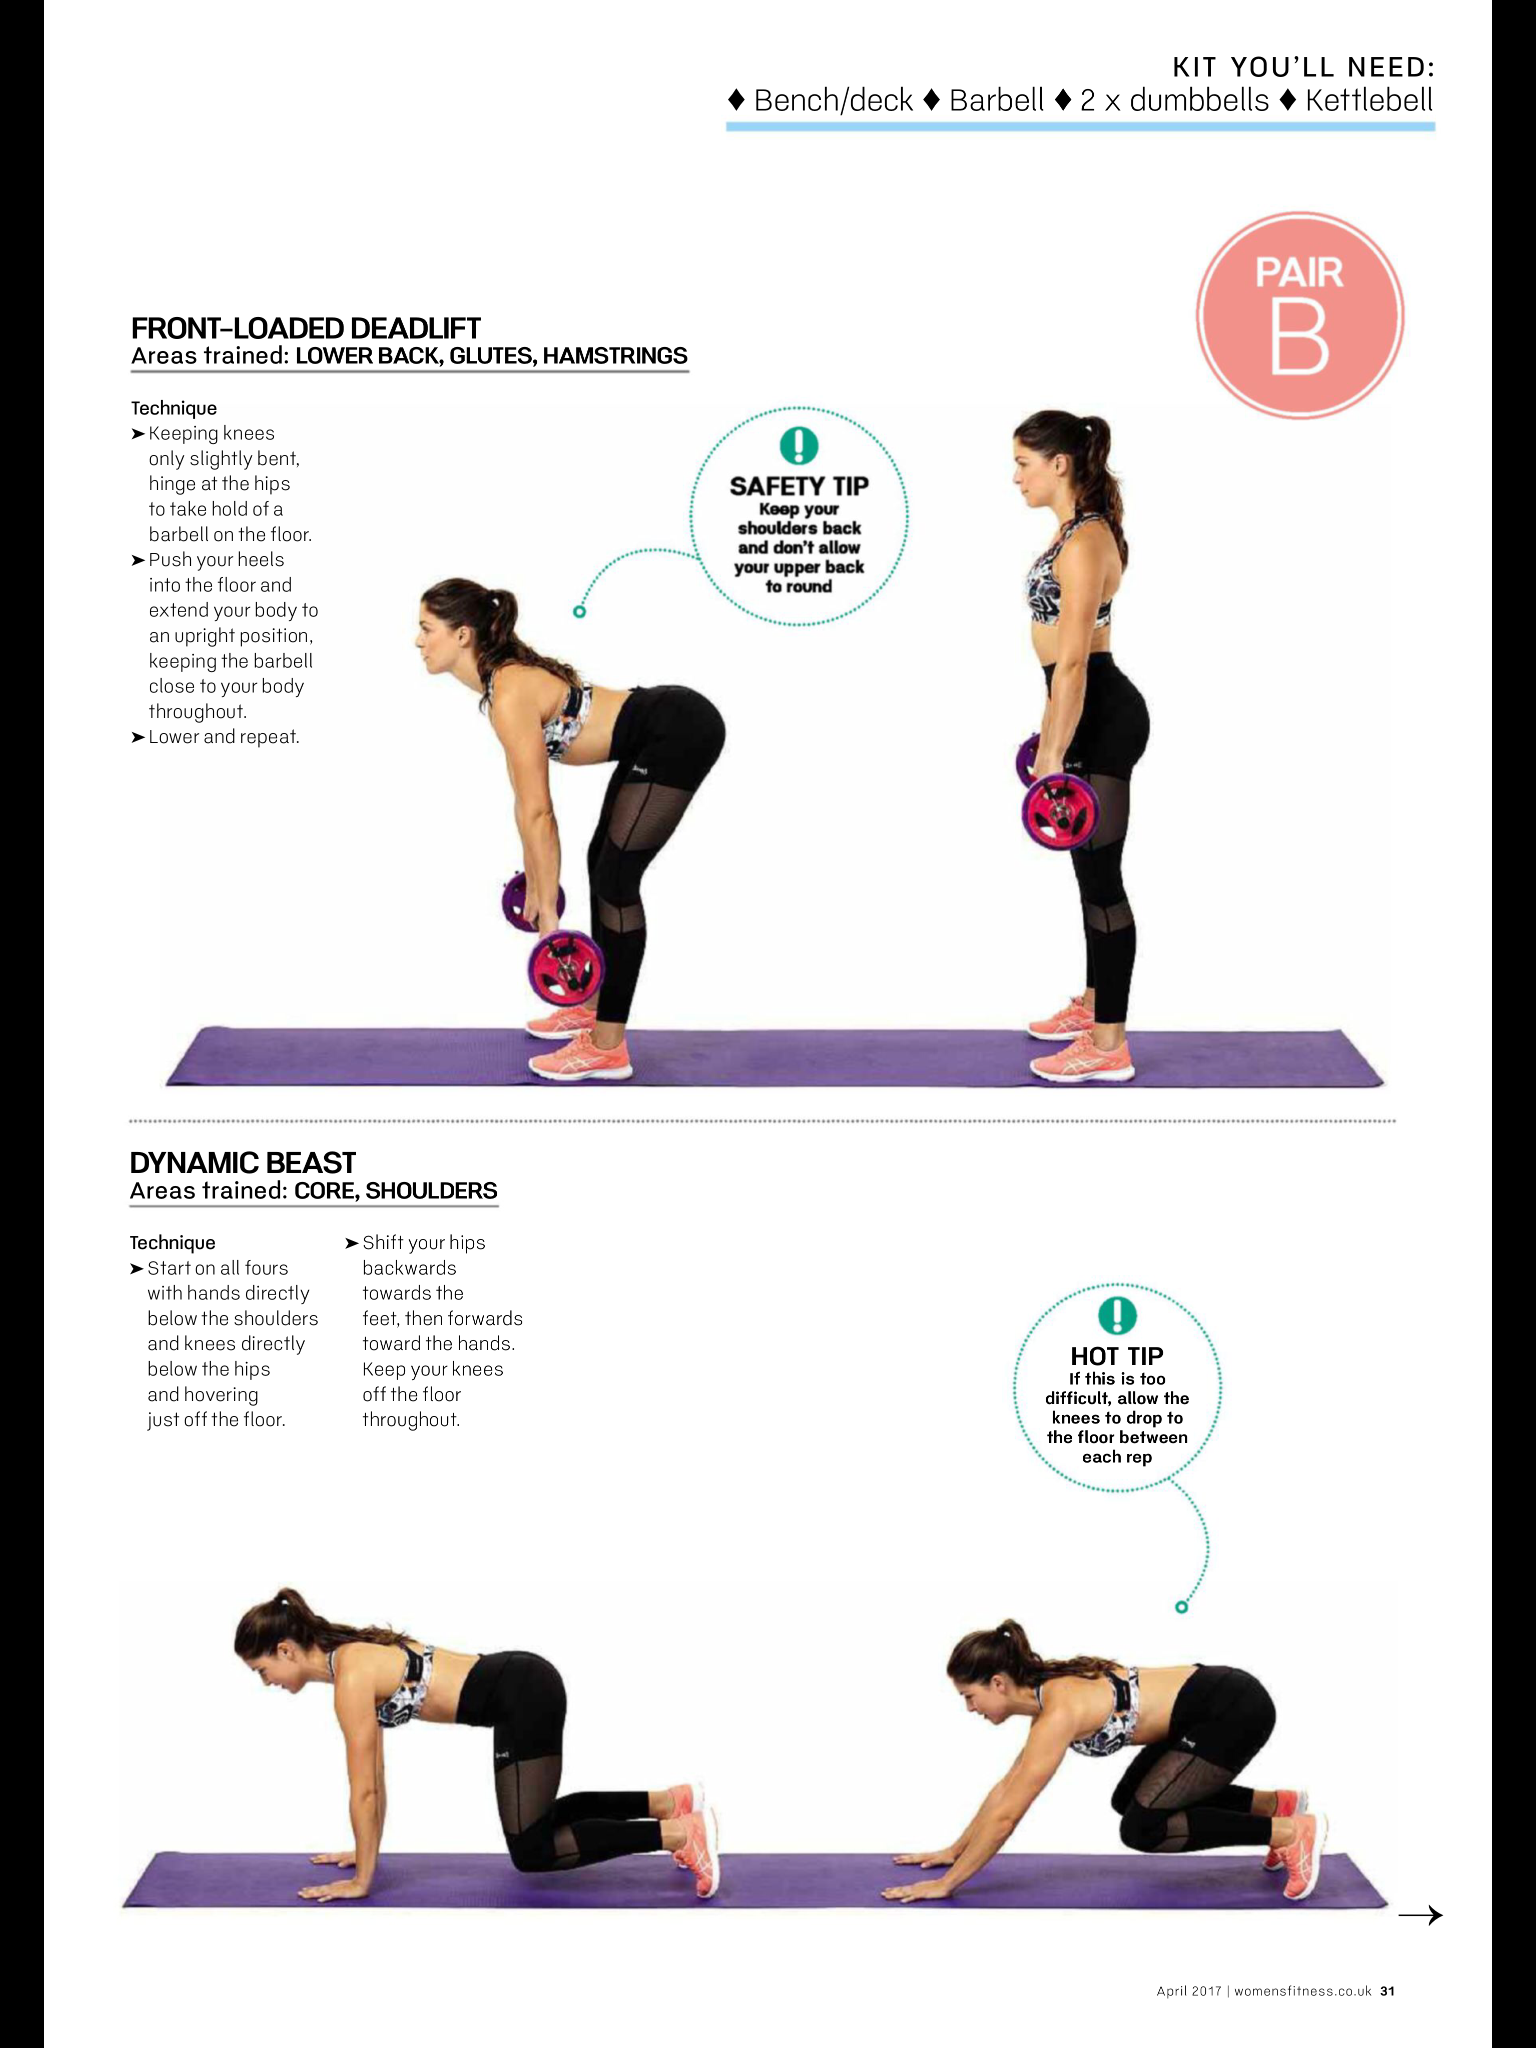 Pin by Jia Jia on Fitness & workouts Kettlebell